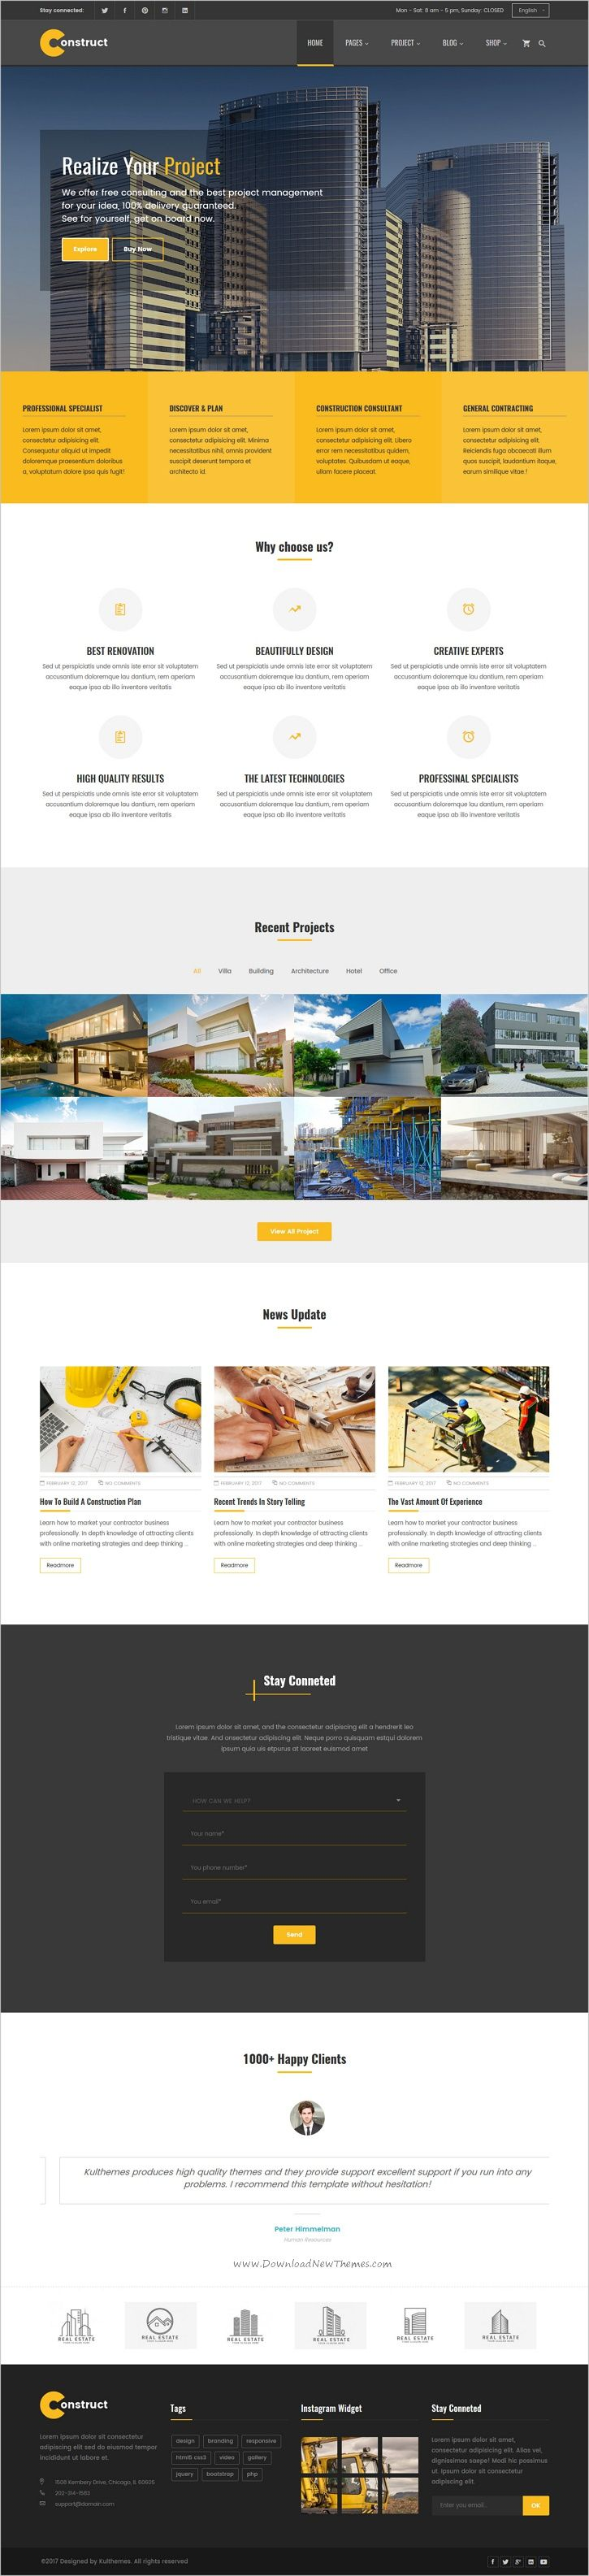 Construct is clean and modern #design 5in1 responsive #HTML5 template fro #construction and #building agency professional website download now > https://themeforest.net/item/construction-building-business-html-template/19814448?ref=Datasata